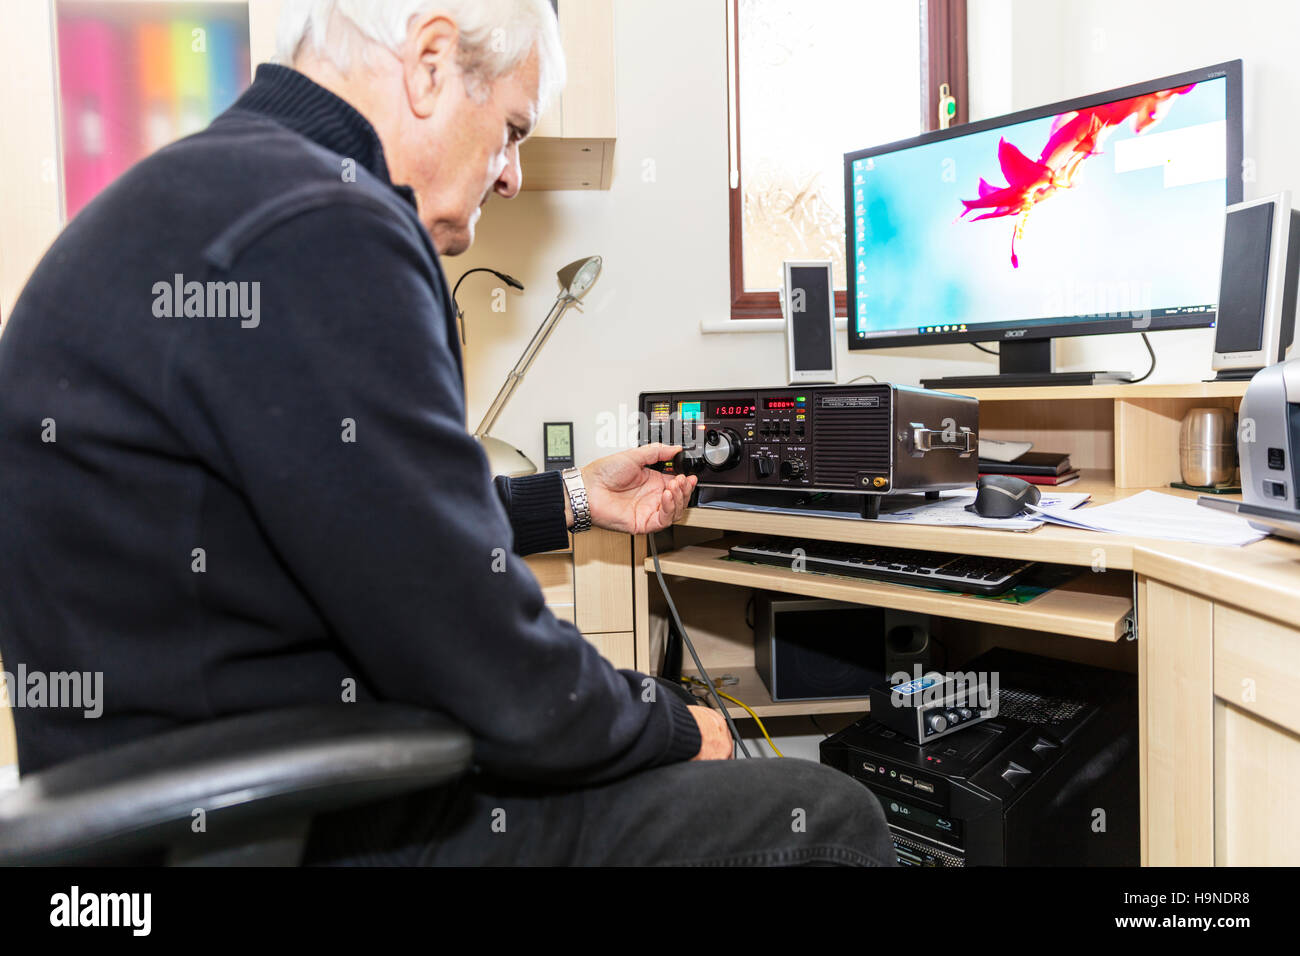 Radio ham amateur radio enthusiast man using Yaesu FRG 7000 High Frequency receiver UK England GB changing frequency - Stock Image